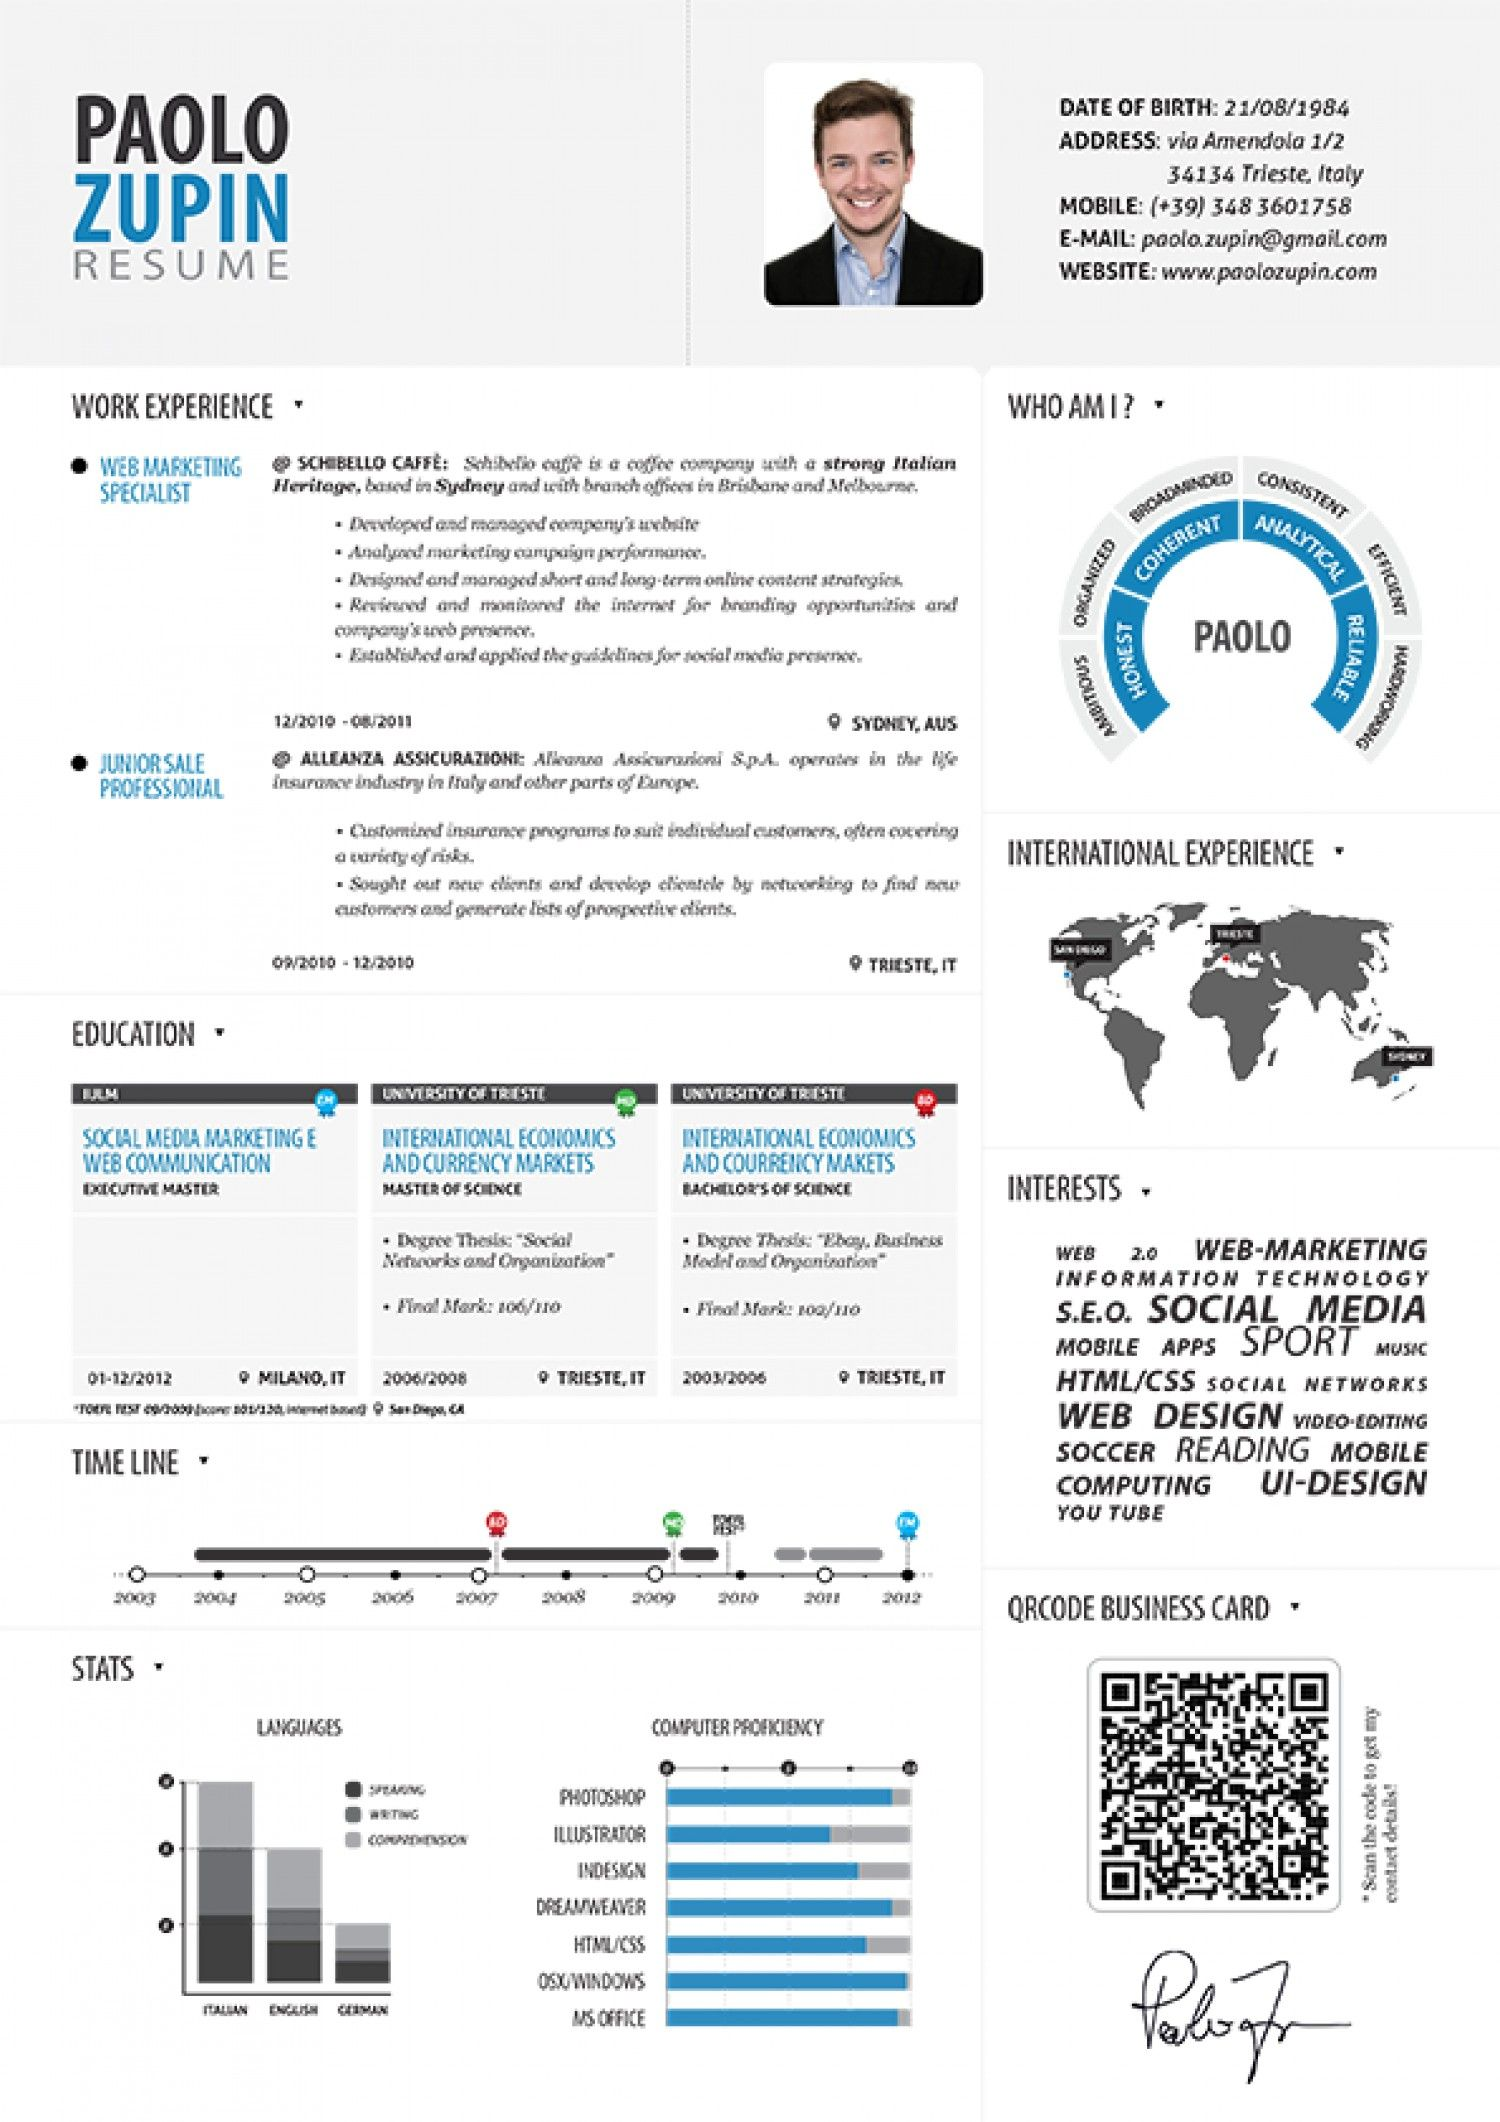 Opposenewapstandardsus  Remarkable  Images About Infographic Resume On Pinterest  Infographic  With Remarkable  Images About Infographic Resume On Pinterest  Infographic Resume Resume And Business Resume With Easy On The Eye L Resume Also Staff Accountant Resume Sample In Addition Security Guard Sample Resume And Senior Resume As Well As Resume Proofreading Additionally Colorful Resume Templates From Pinterestcom With Opposenewapstandardsus  Remarkable  Images About Infographic Resume On Pinterest  Infographic  With Easy On The Eye  Images About Infographic Resume On Pinterest  Infographic Resume Resume And Business Resume And Remarkable L Resume Also Staff Accountant Resume Sample In Addition Security Guard Sample Resume From Pinterestcom